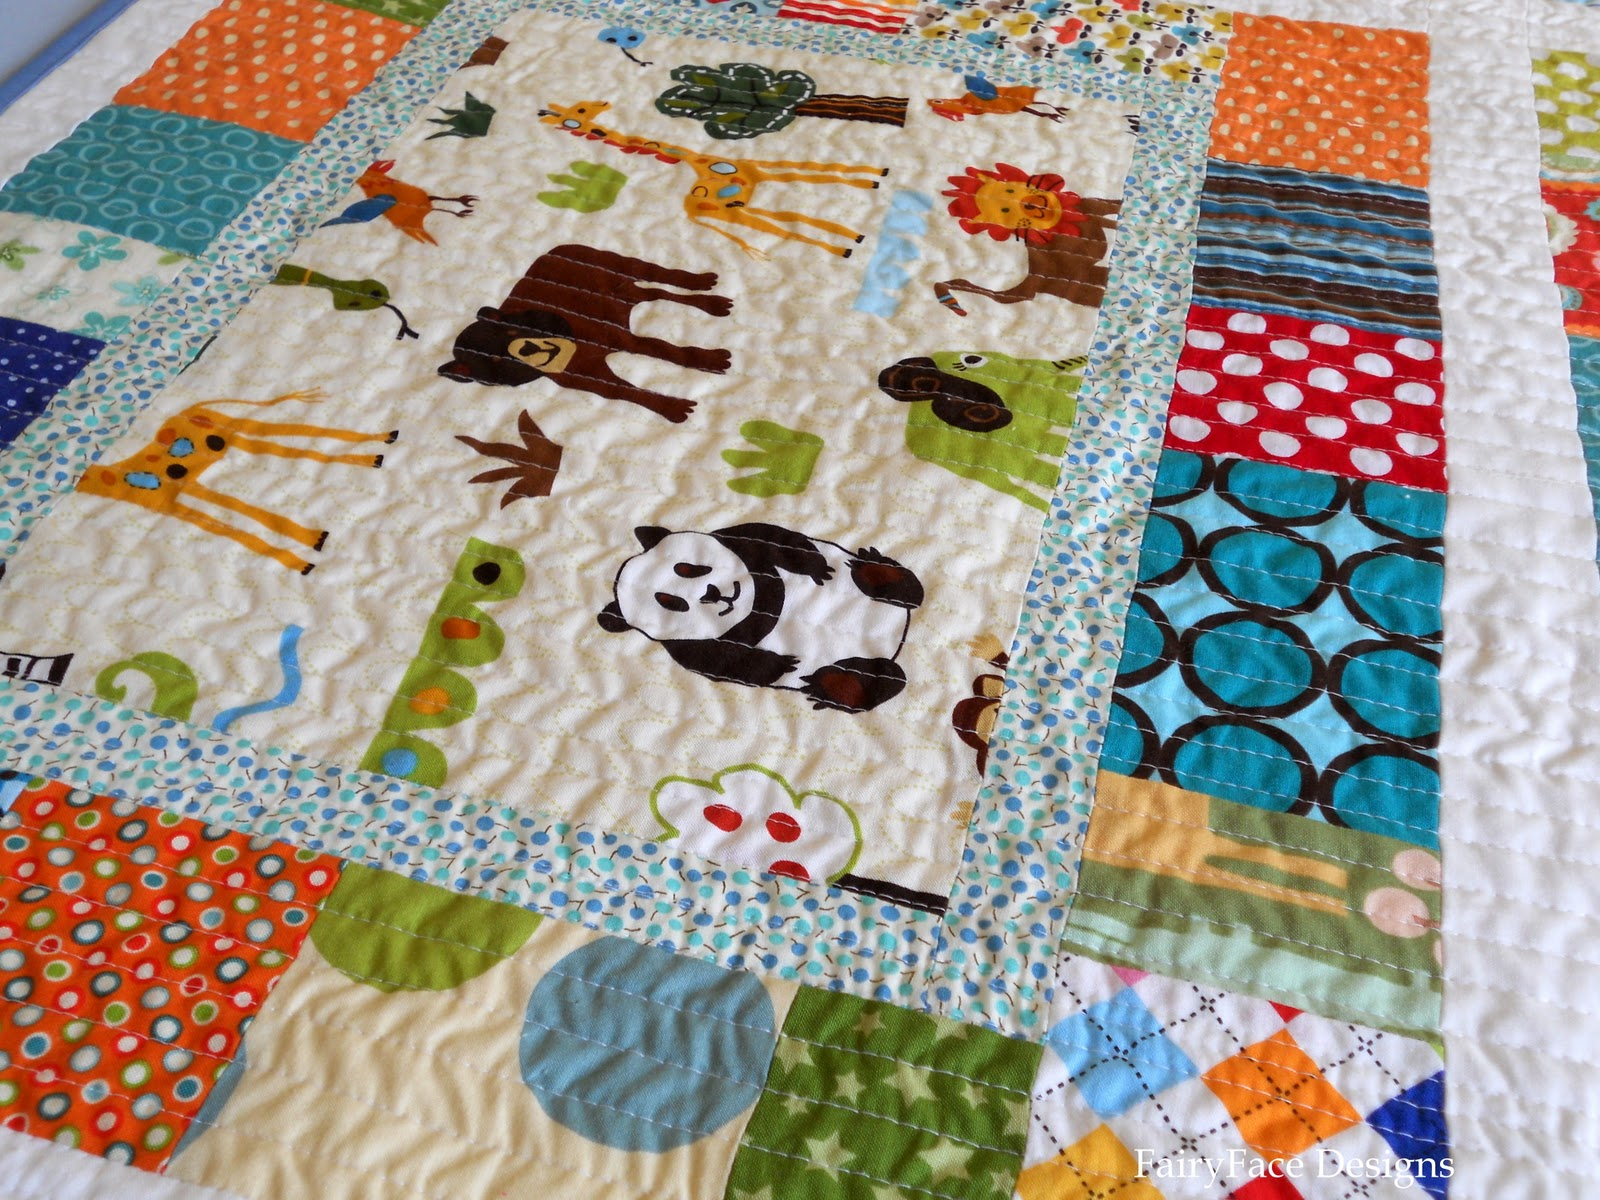 Quilt Story I Spy A Boy Quilt From Fairyface Designs